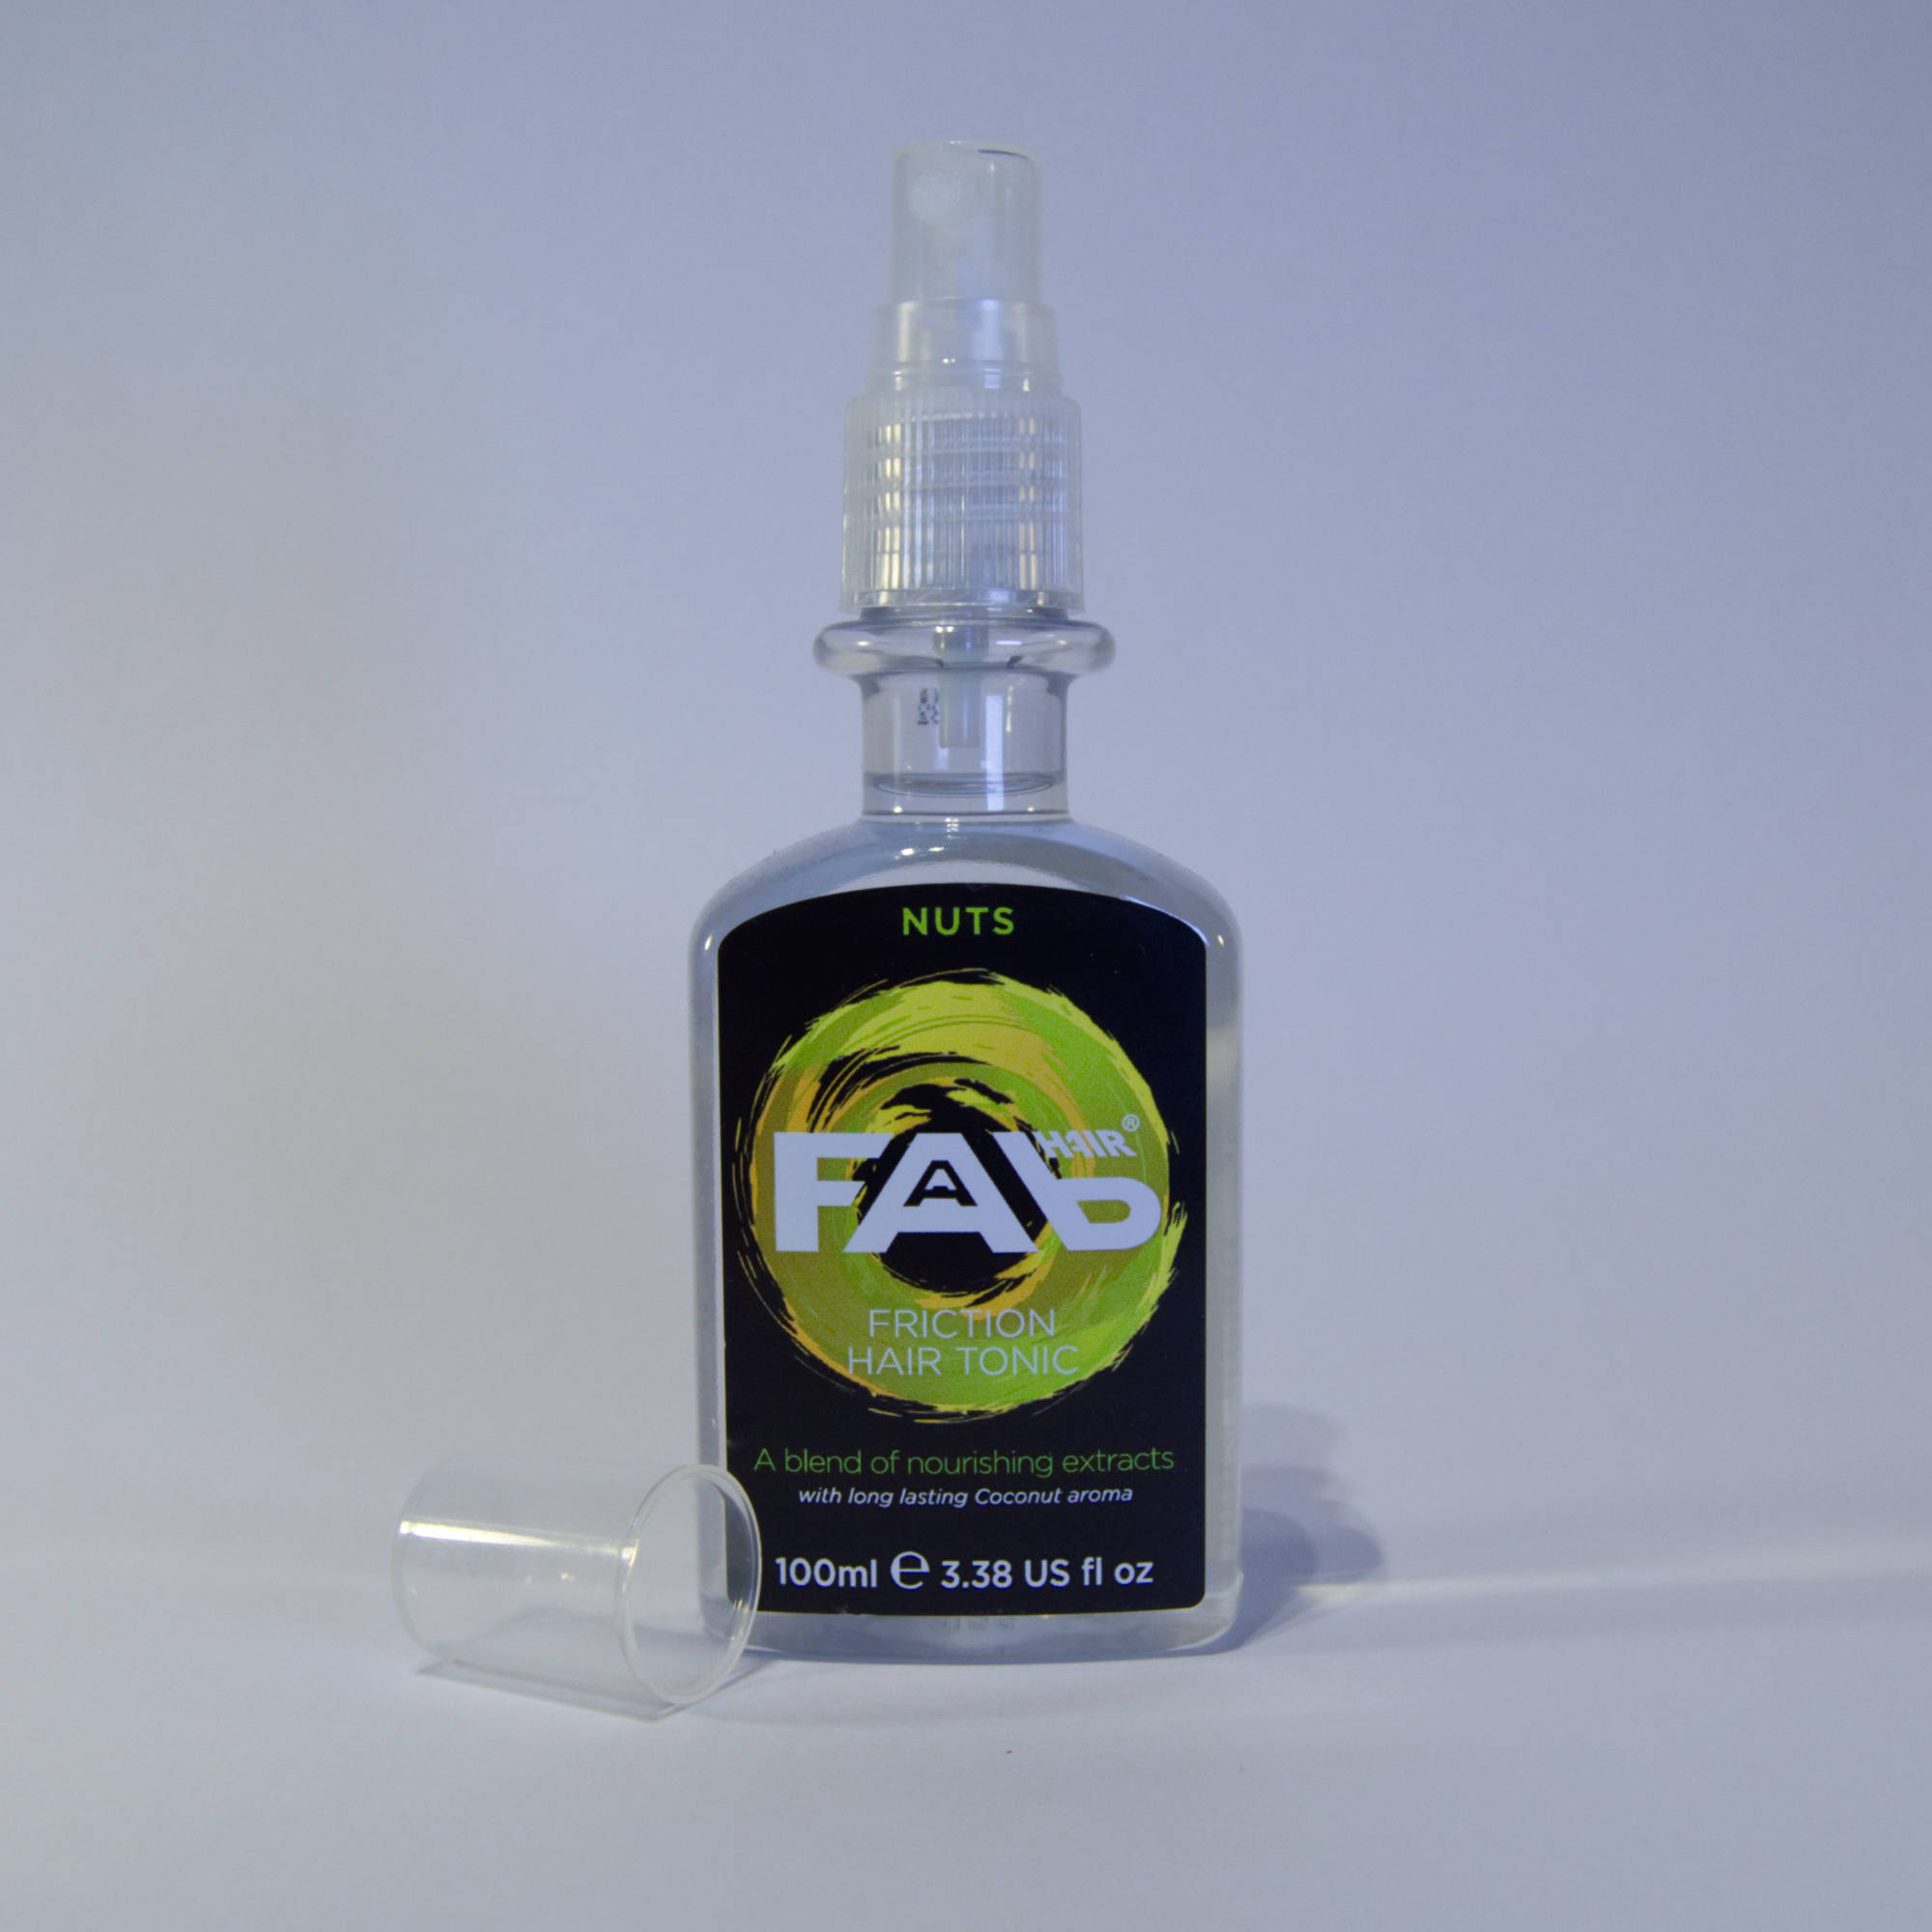 100ml bottle of Nuts flavoured FAB friction hair tonic with Spray Nozzle